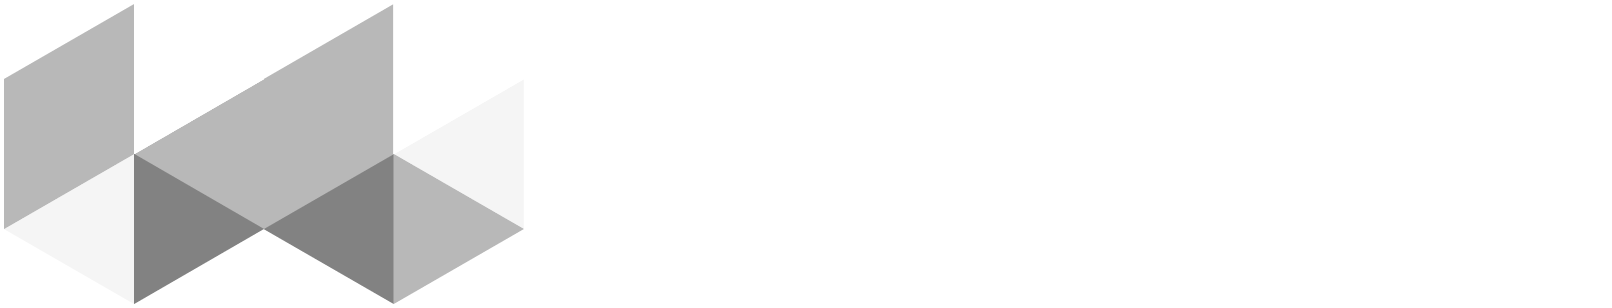 Marsh Commercial Logo